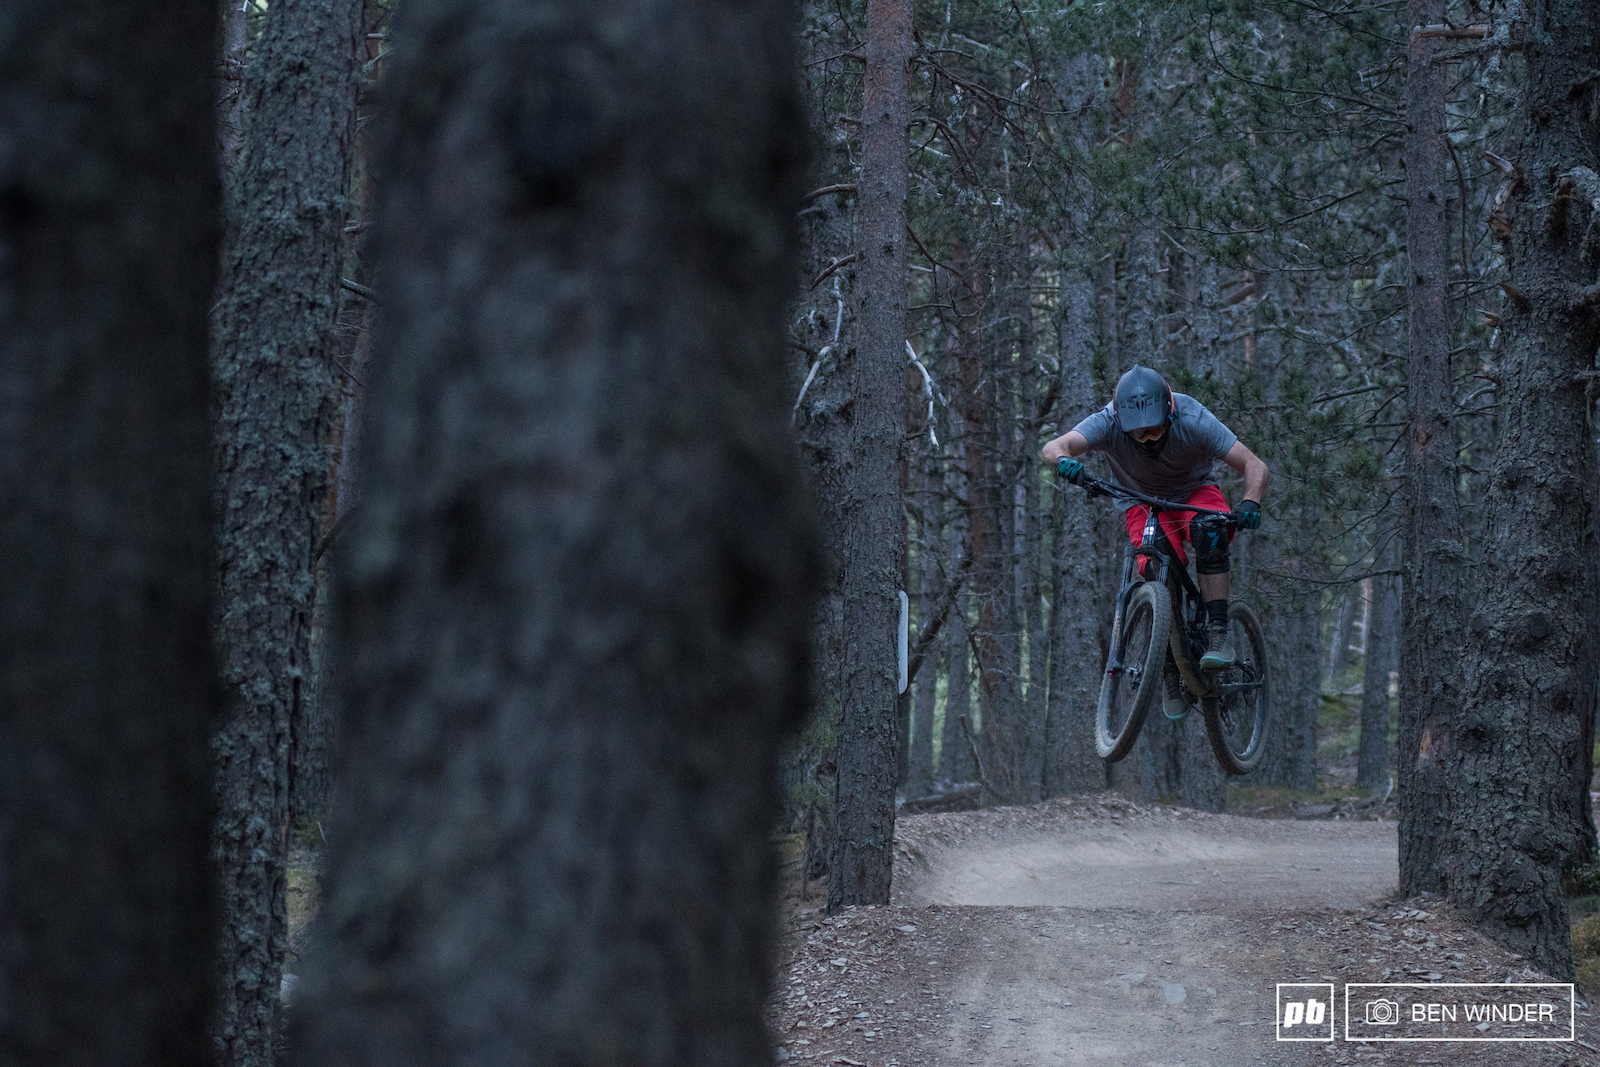 The Commencal track back to town is a fun flow trail with a few big hucks.